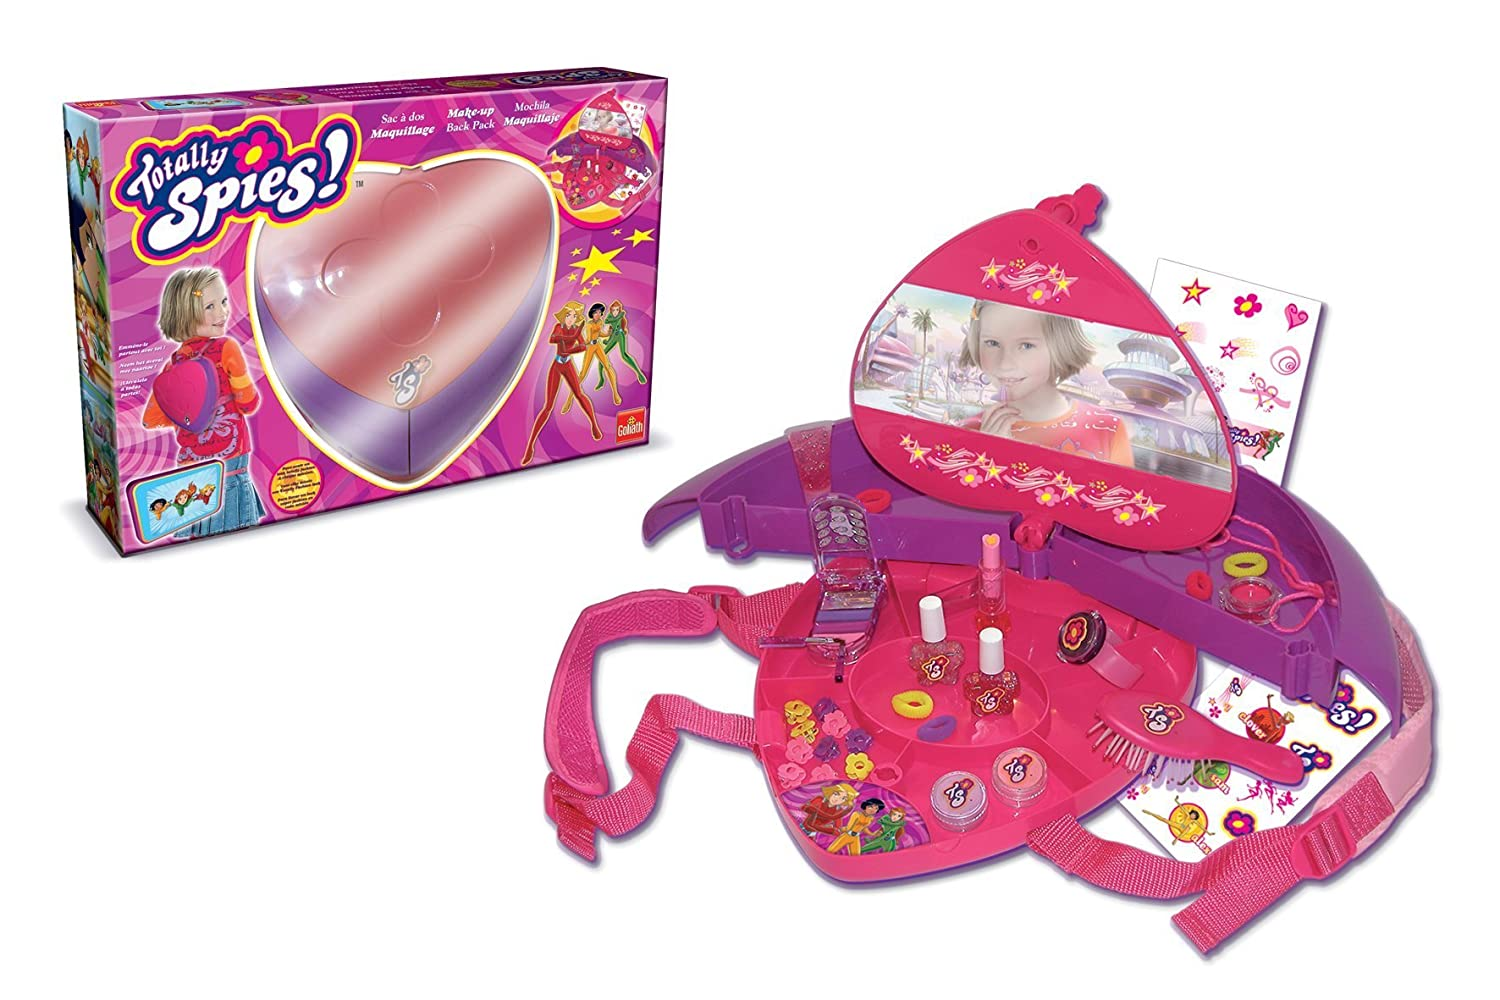 super populaire 981ab 85e90 Goliath - Imitation - Totally Spies - Sac à dos maquillage ...